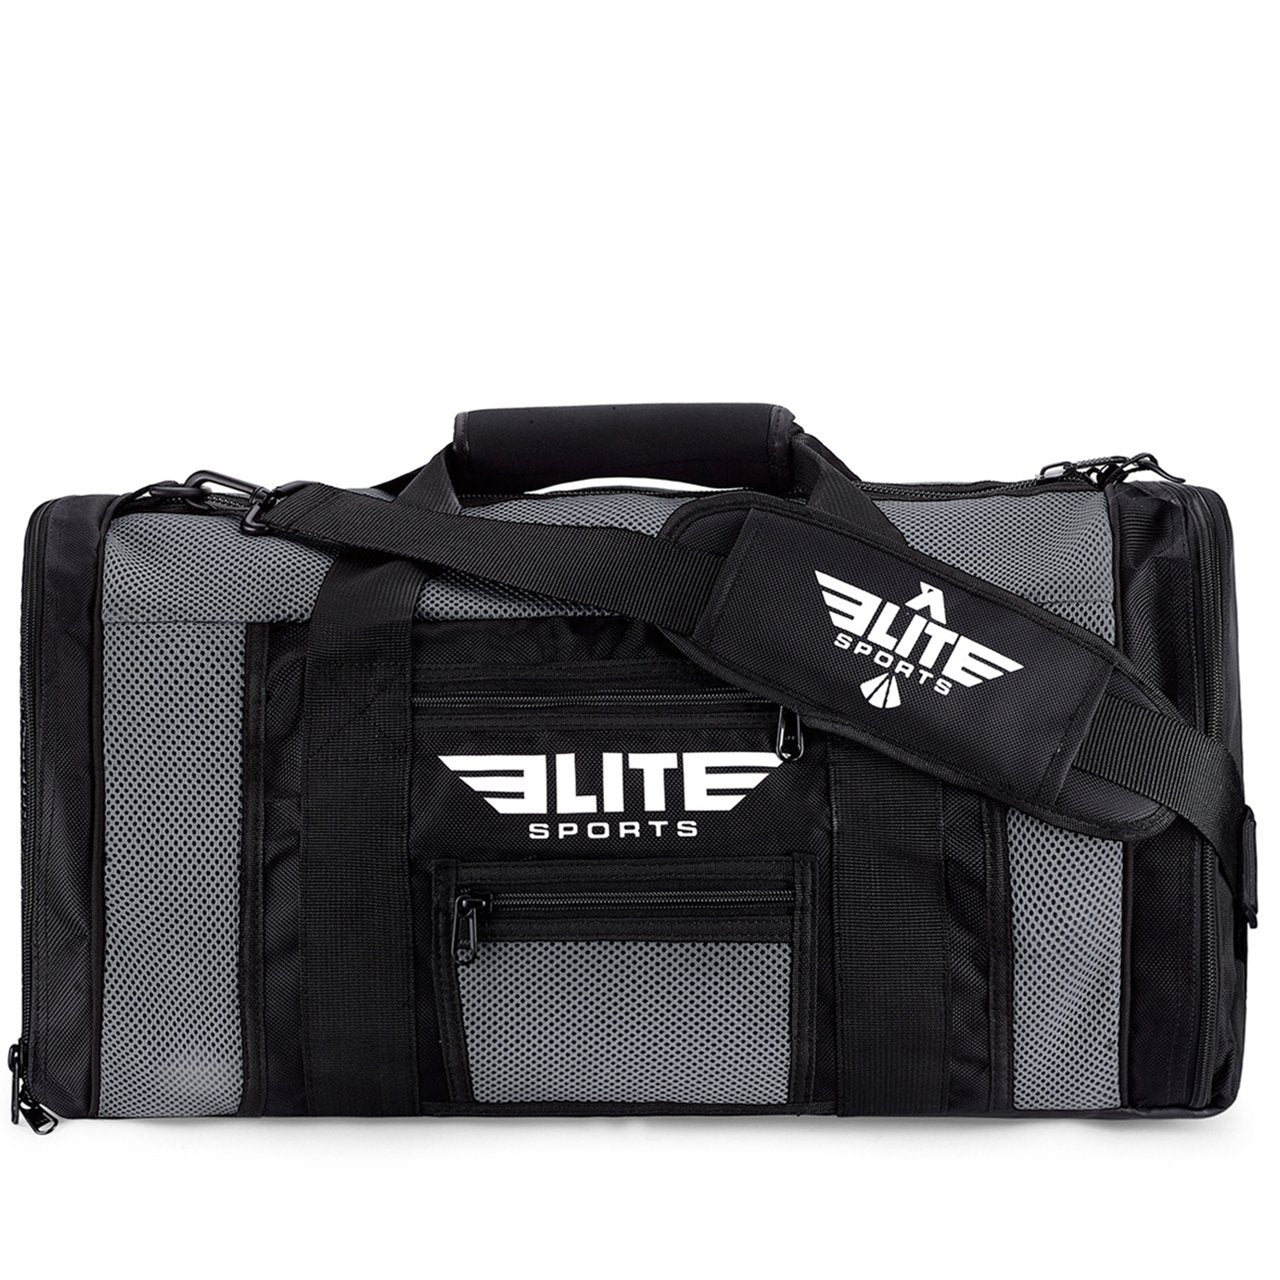 Load image into Gallery viewer, Elite Sports Mesh Gray Large Taekwondo Gear Gym Bag